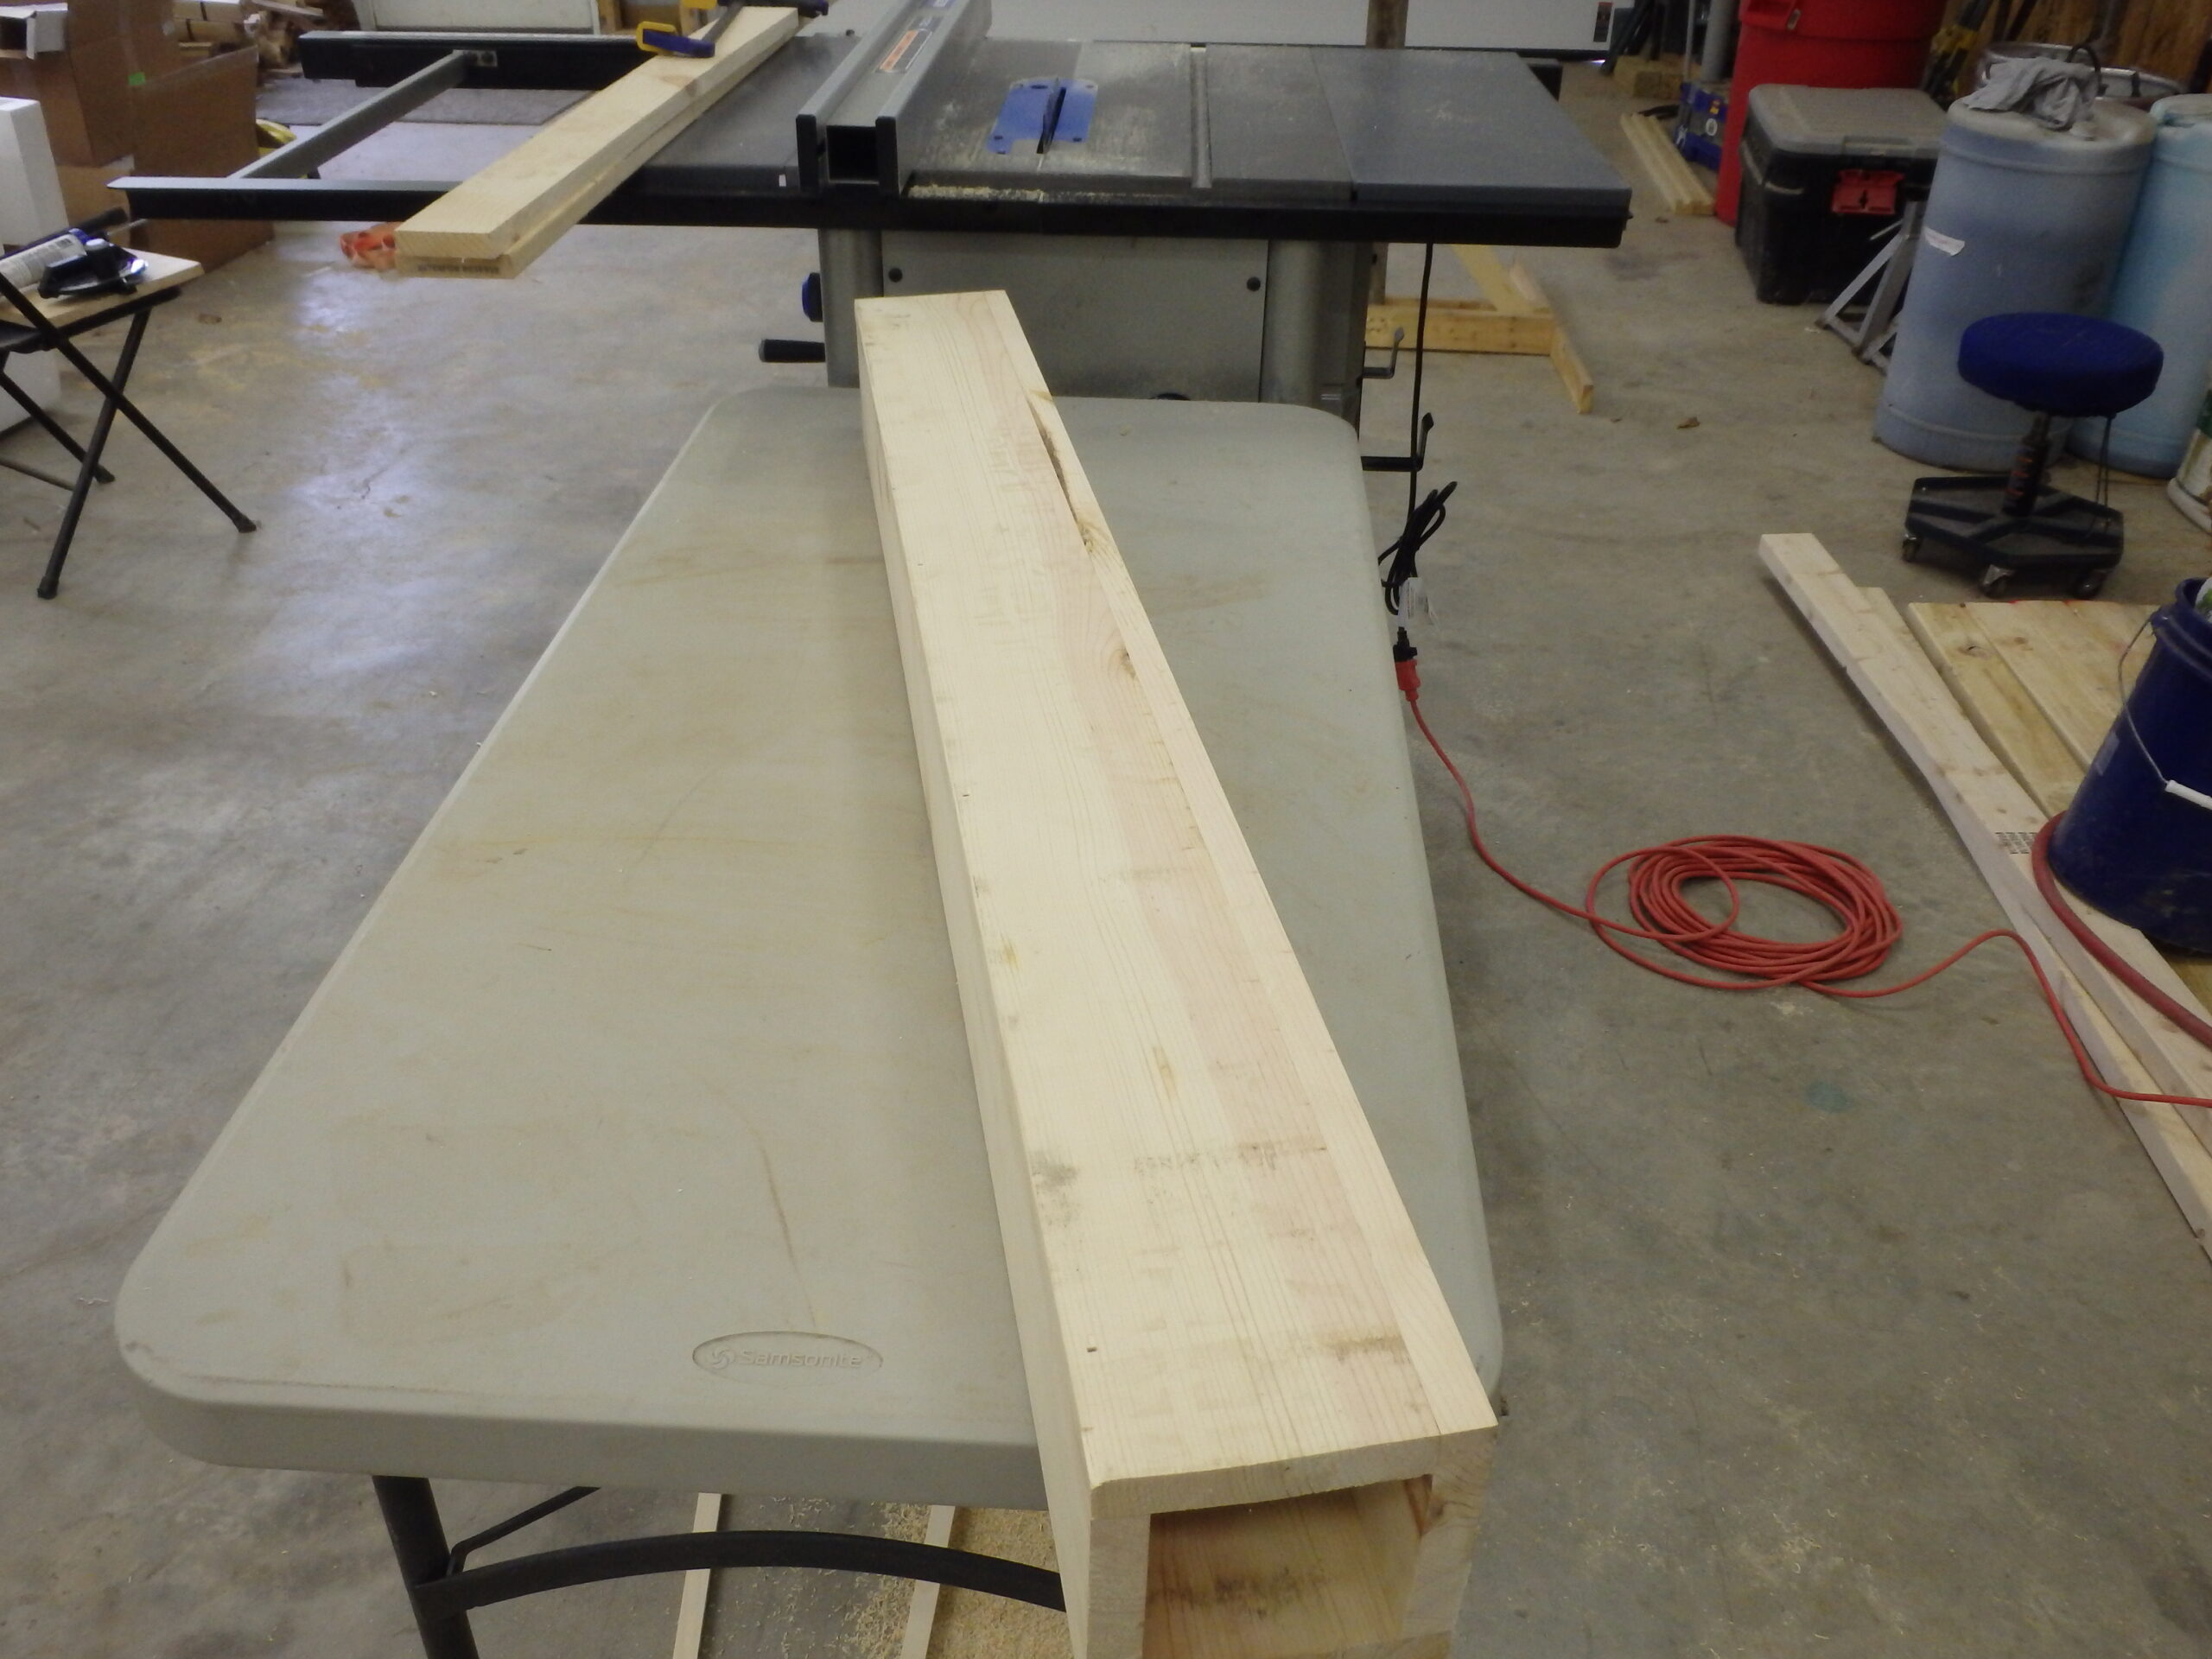 The first step of our construction process: creating the central column